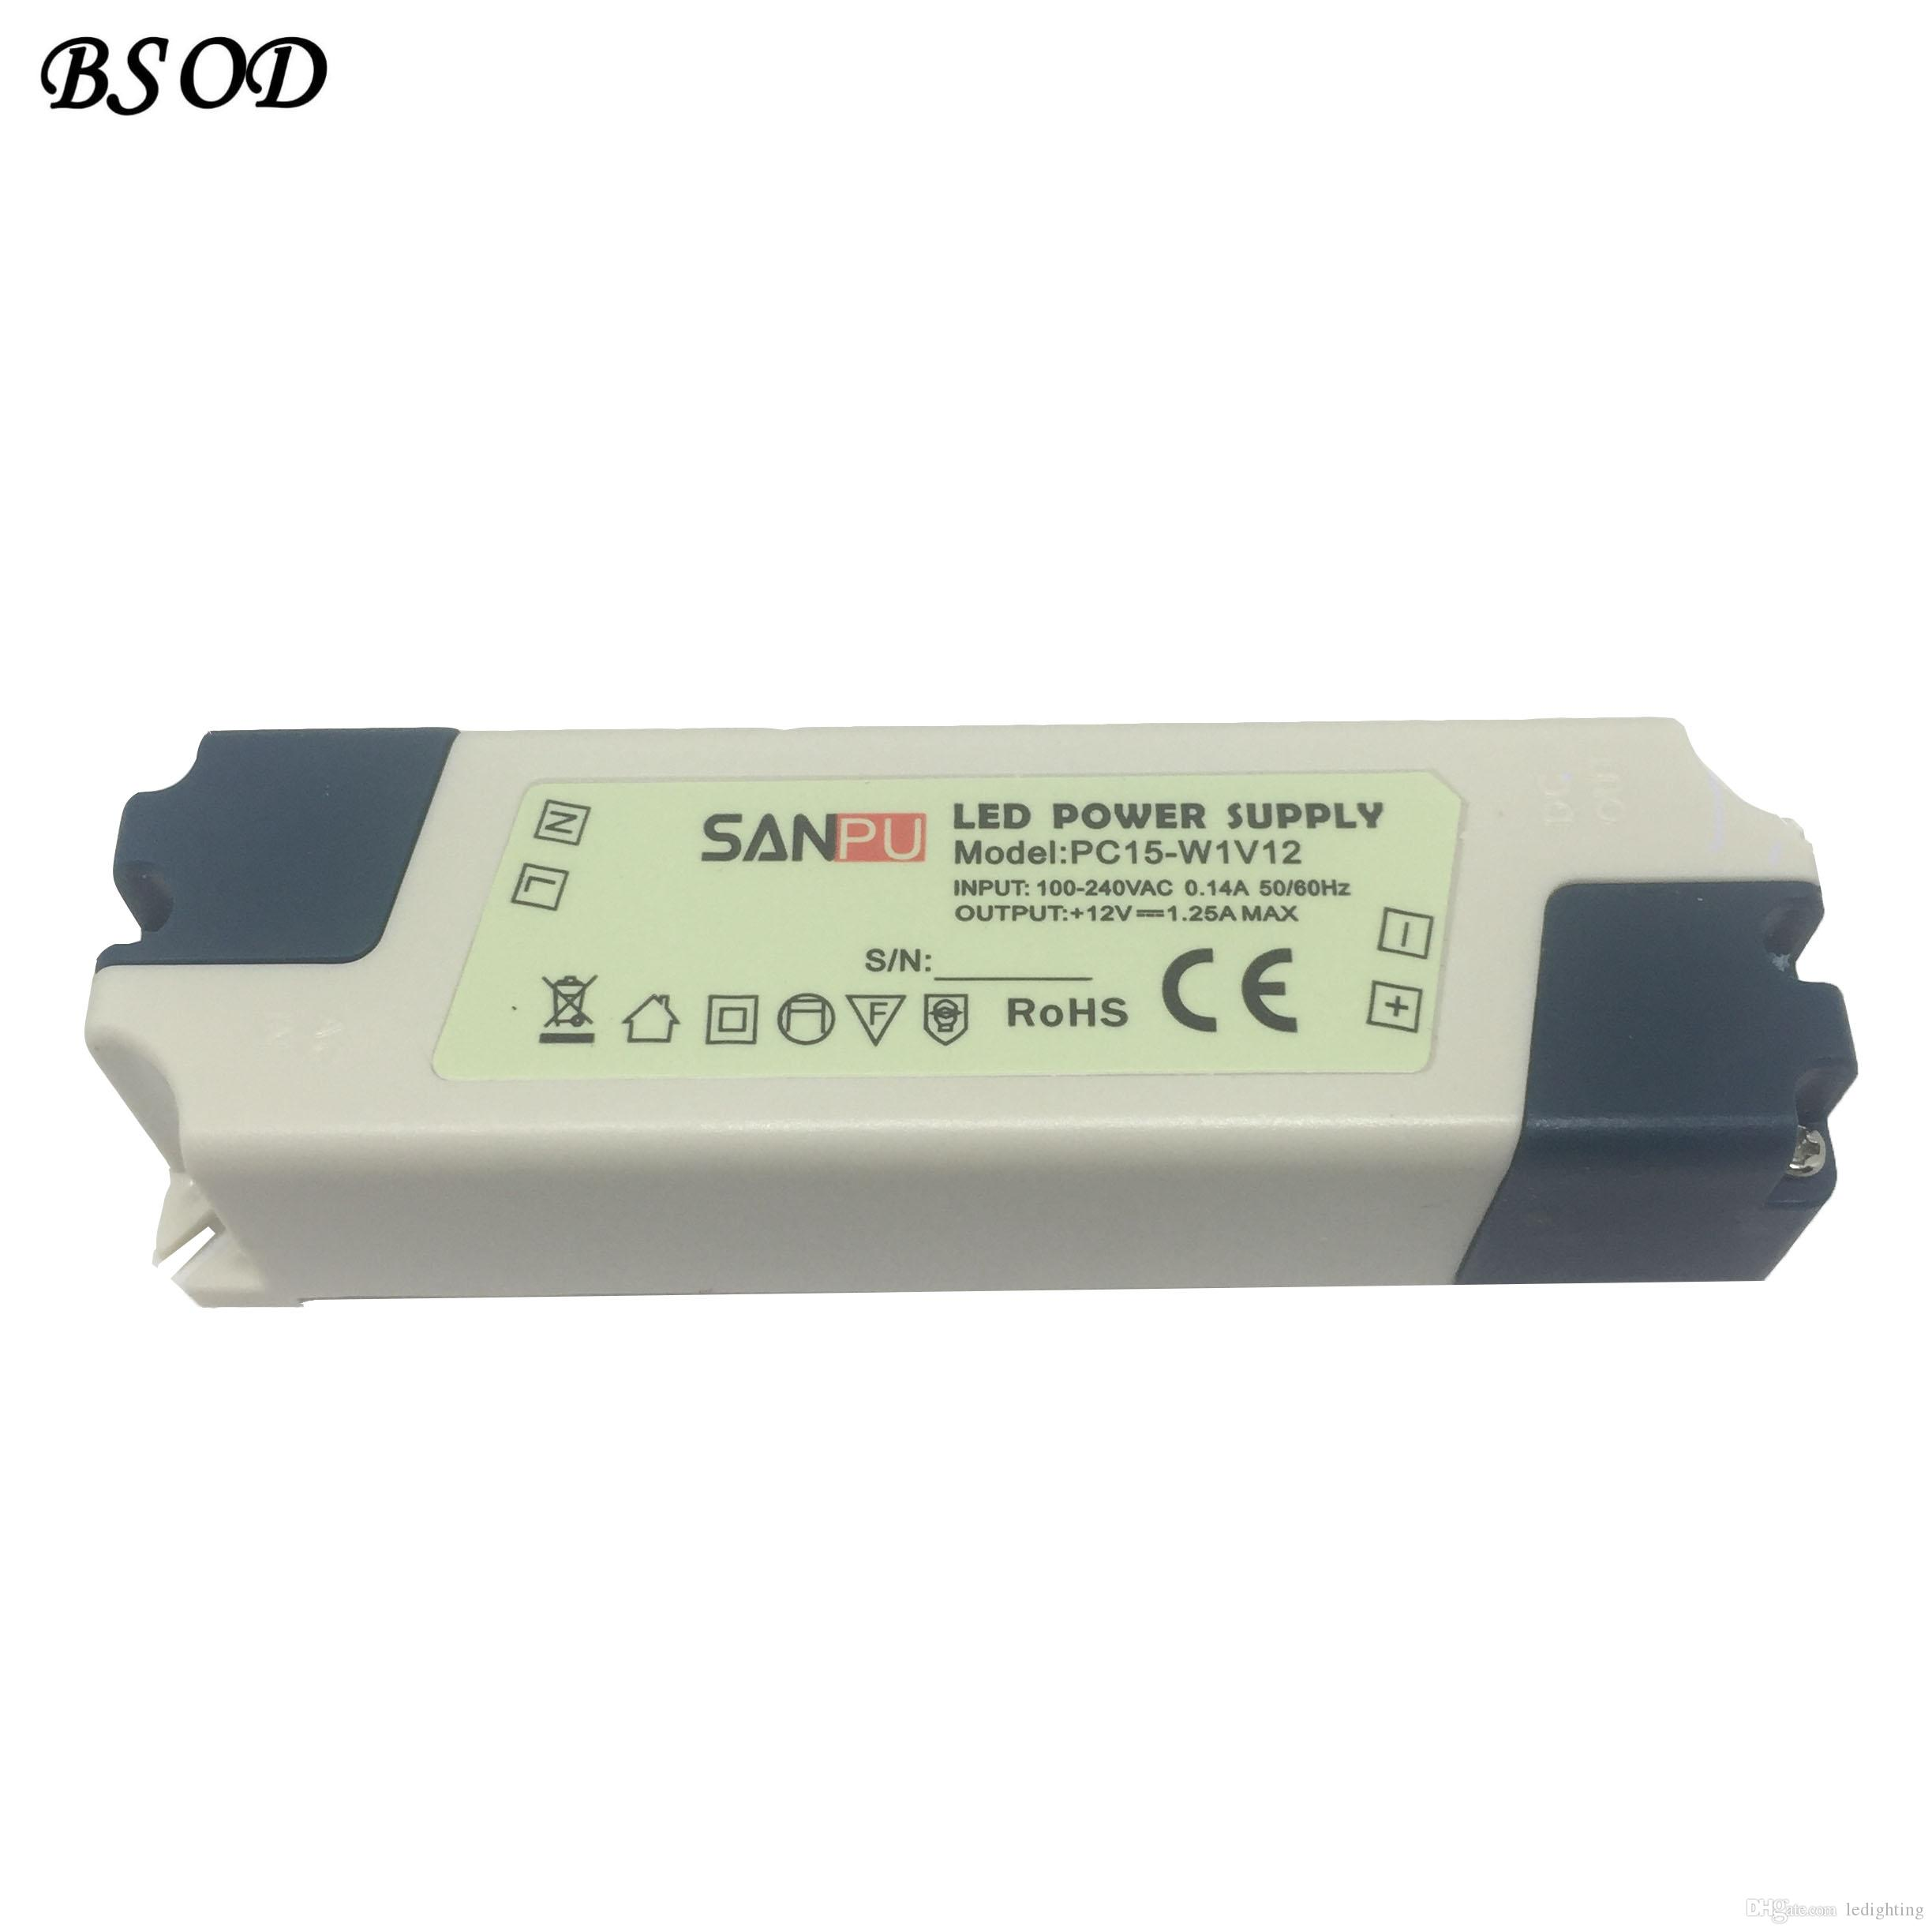 SANPU LED Power Supply 12V 15W Constant Voltage Single Output Indoor Use IP44 Plastic Shell Small Size PC15-W1V12